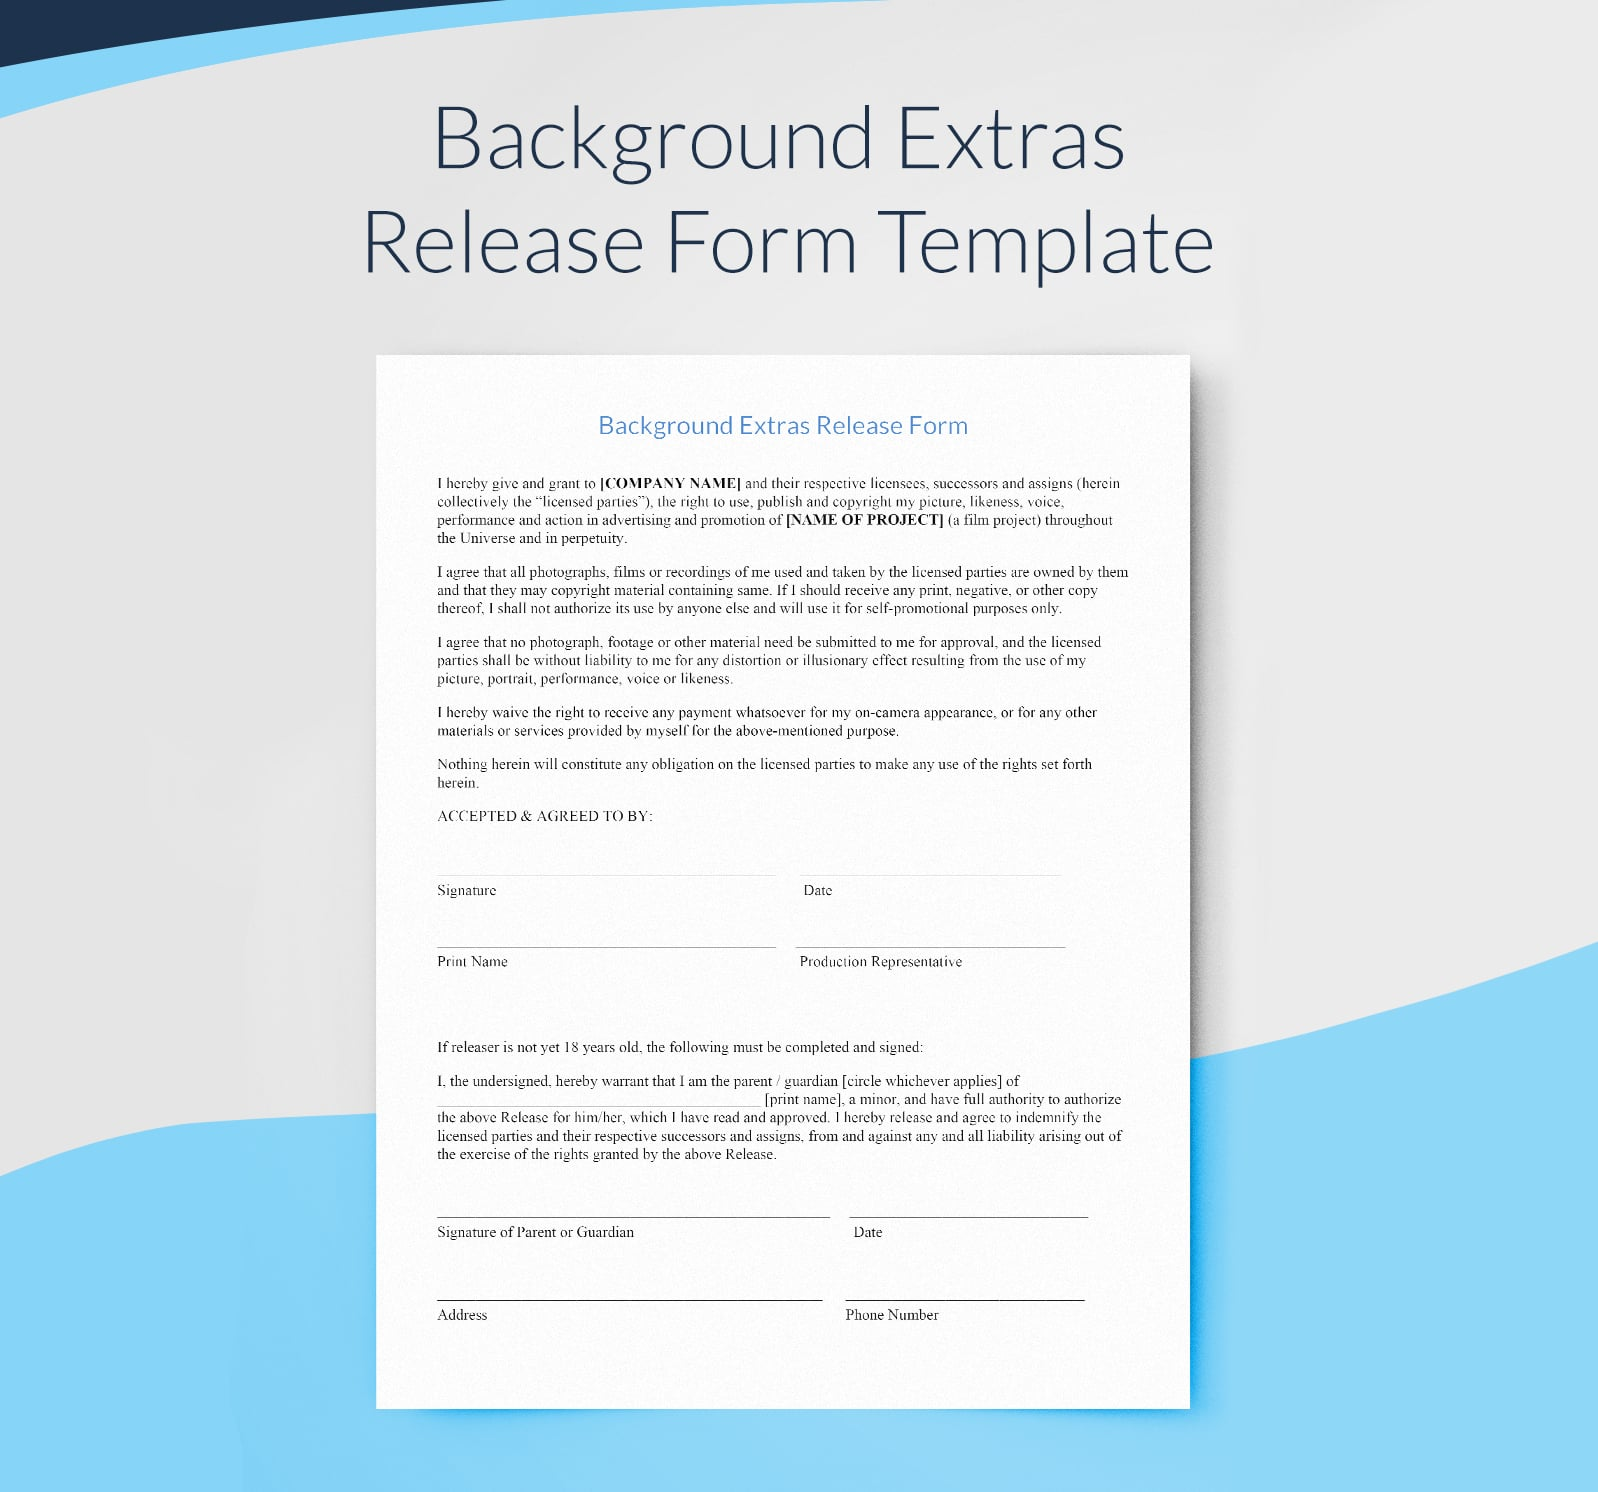 Example background extras release form template for filmmakers